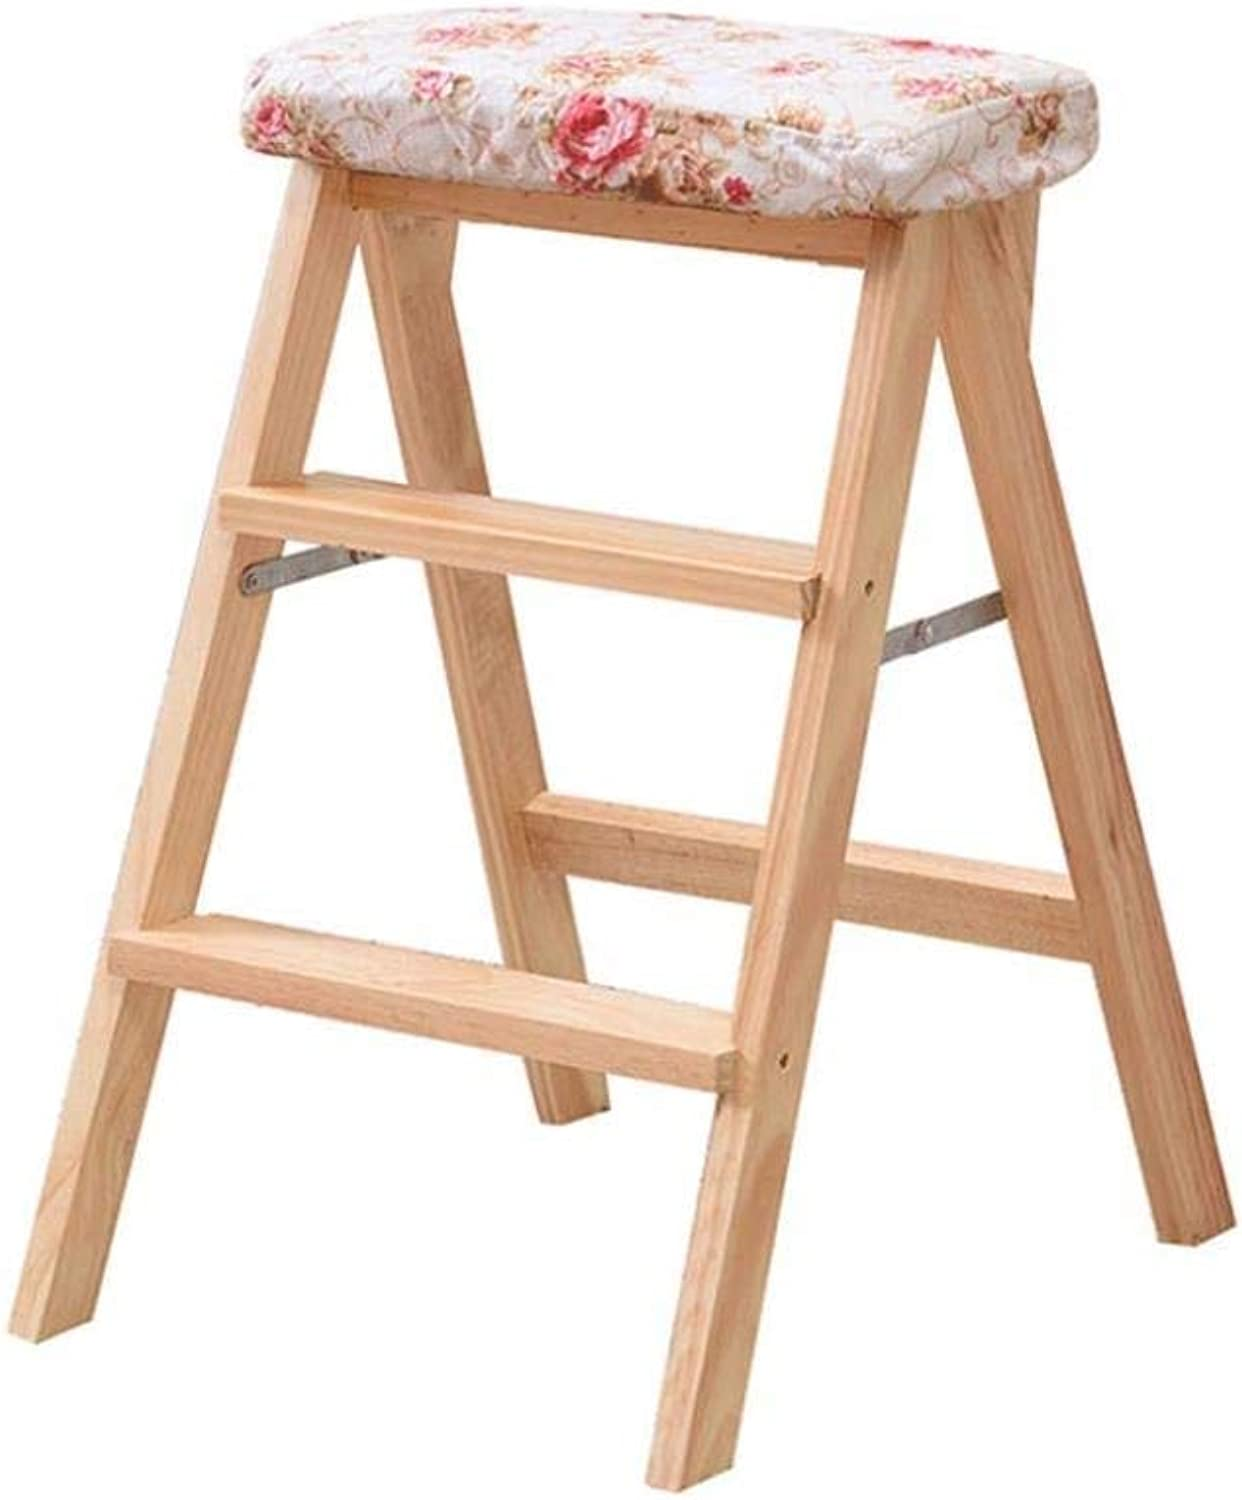 Household Folding Stool Solid Wood Portable Chair Kitchen Creative Folding Stool Adult High Stool Step Stool Simple Small Bench 42×49×63cm ZXMDMZ (color   T)